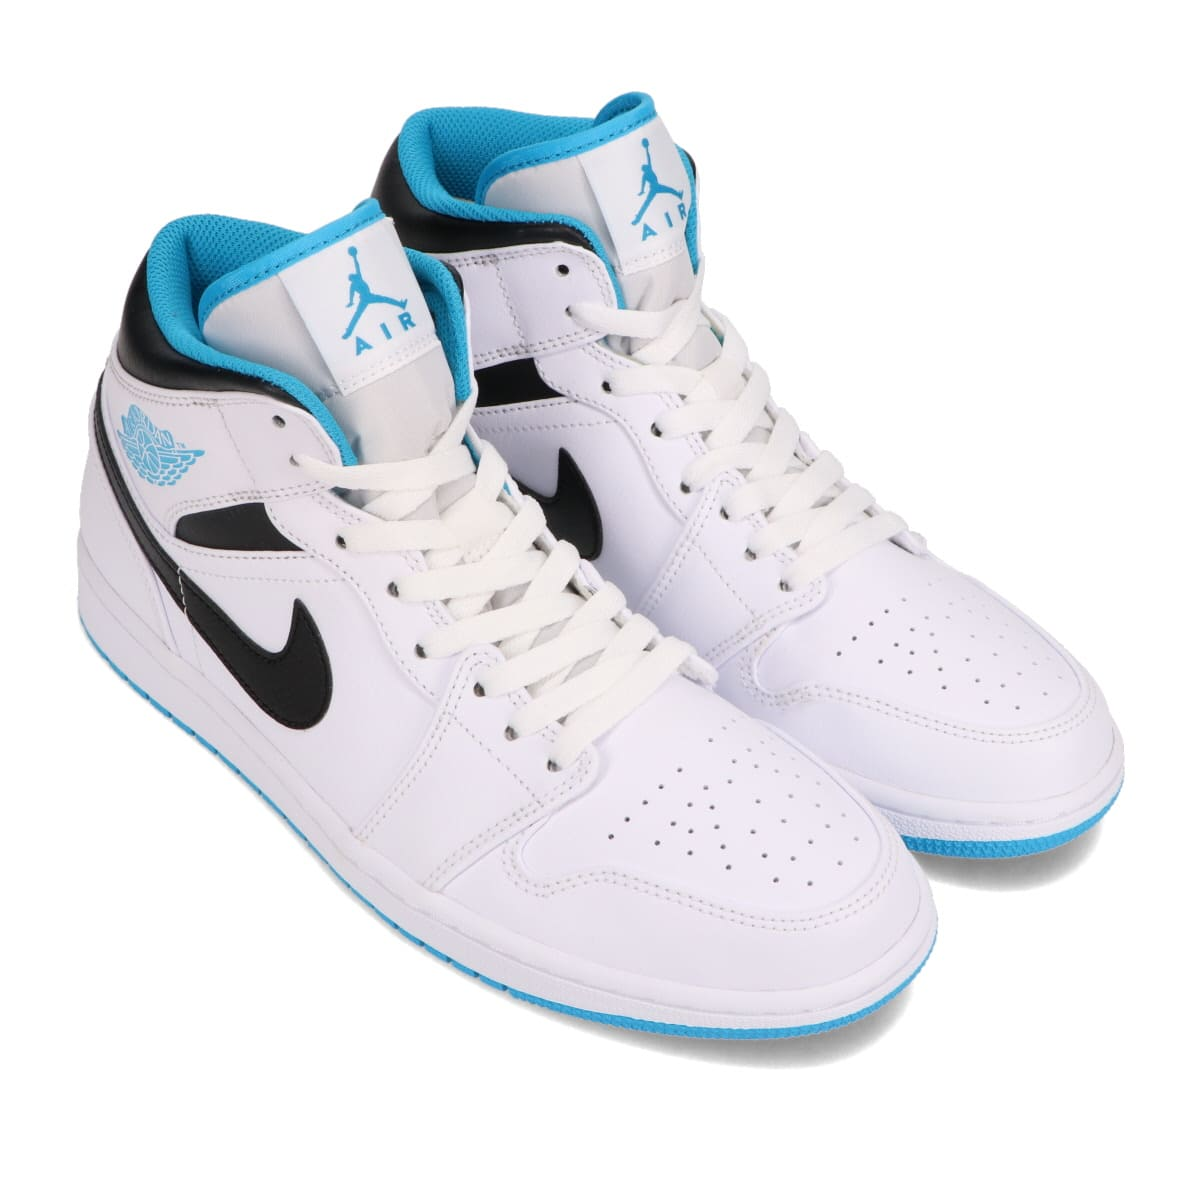 JORDAN BRAND AIR JORDAN 1 MID WHITE/LASER BLUE-BLACK 20HO-I_photo_large